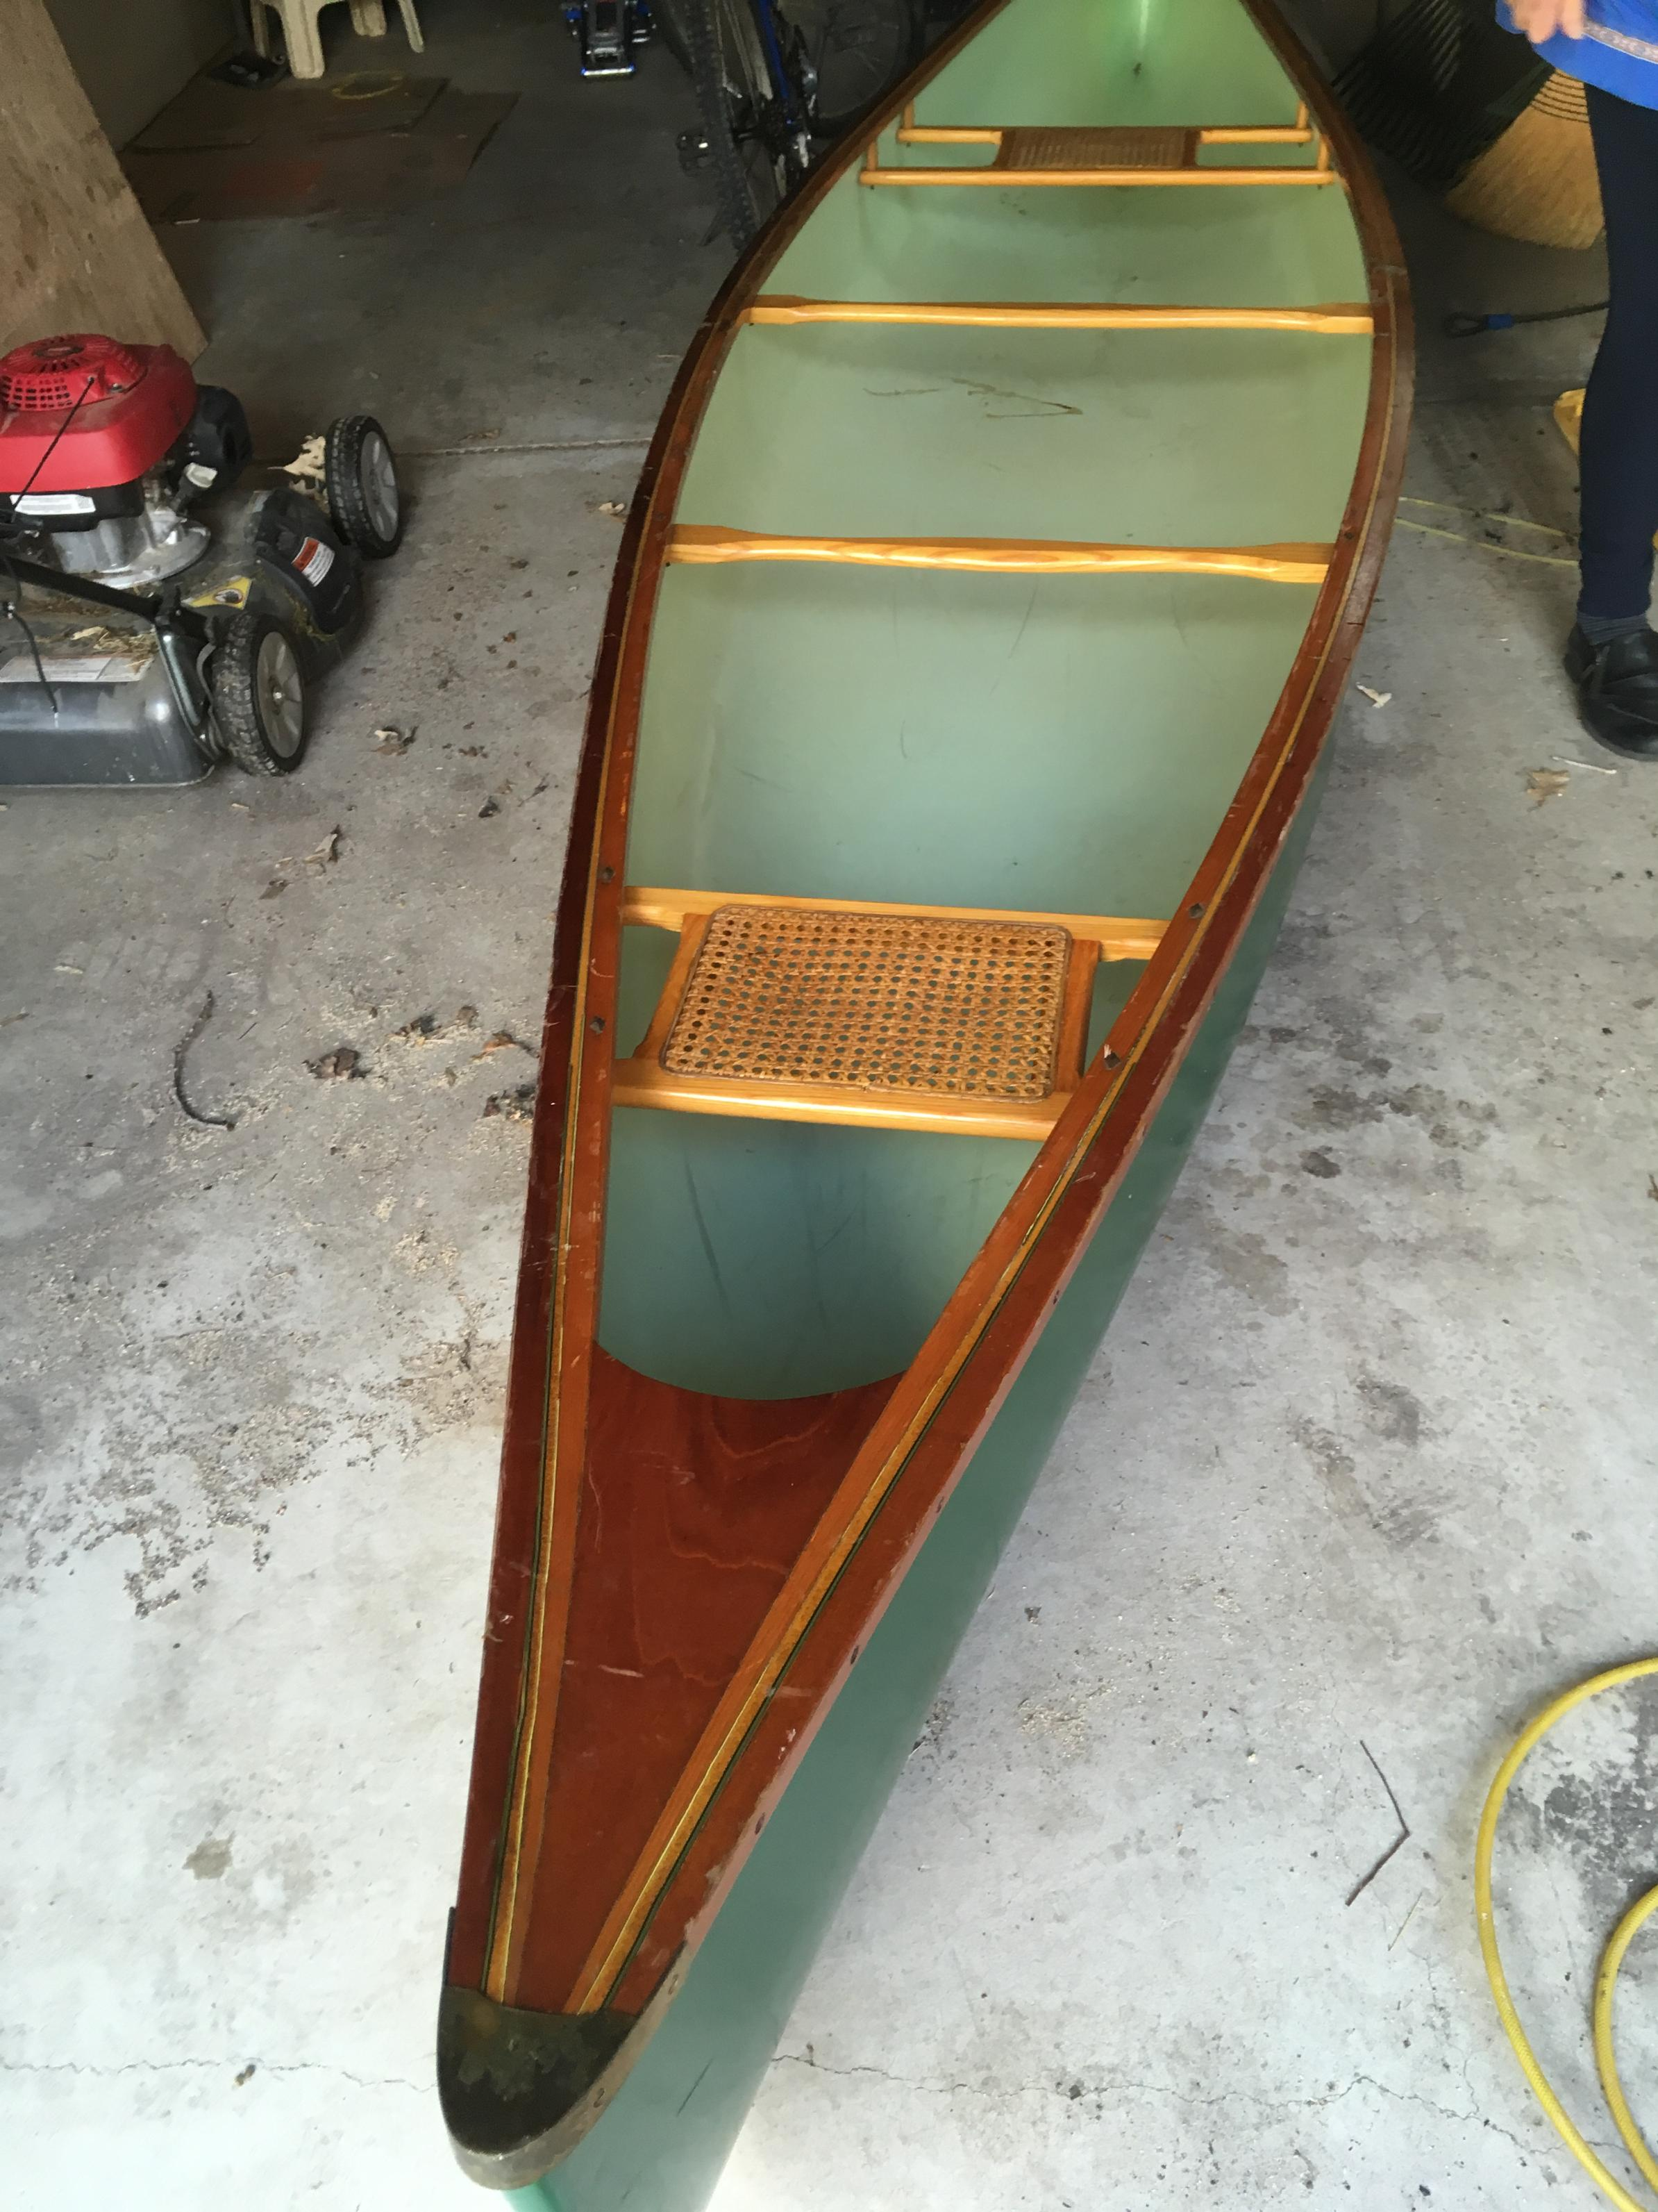 Bwca New Used Canoe Good Deal You Think Boundary Waters